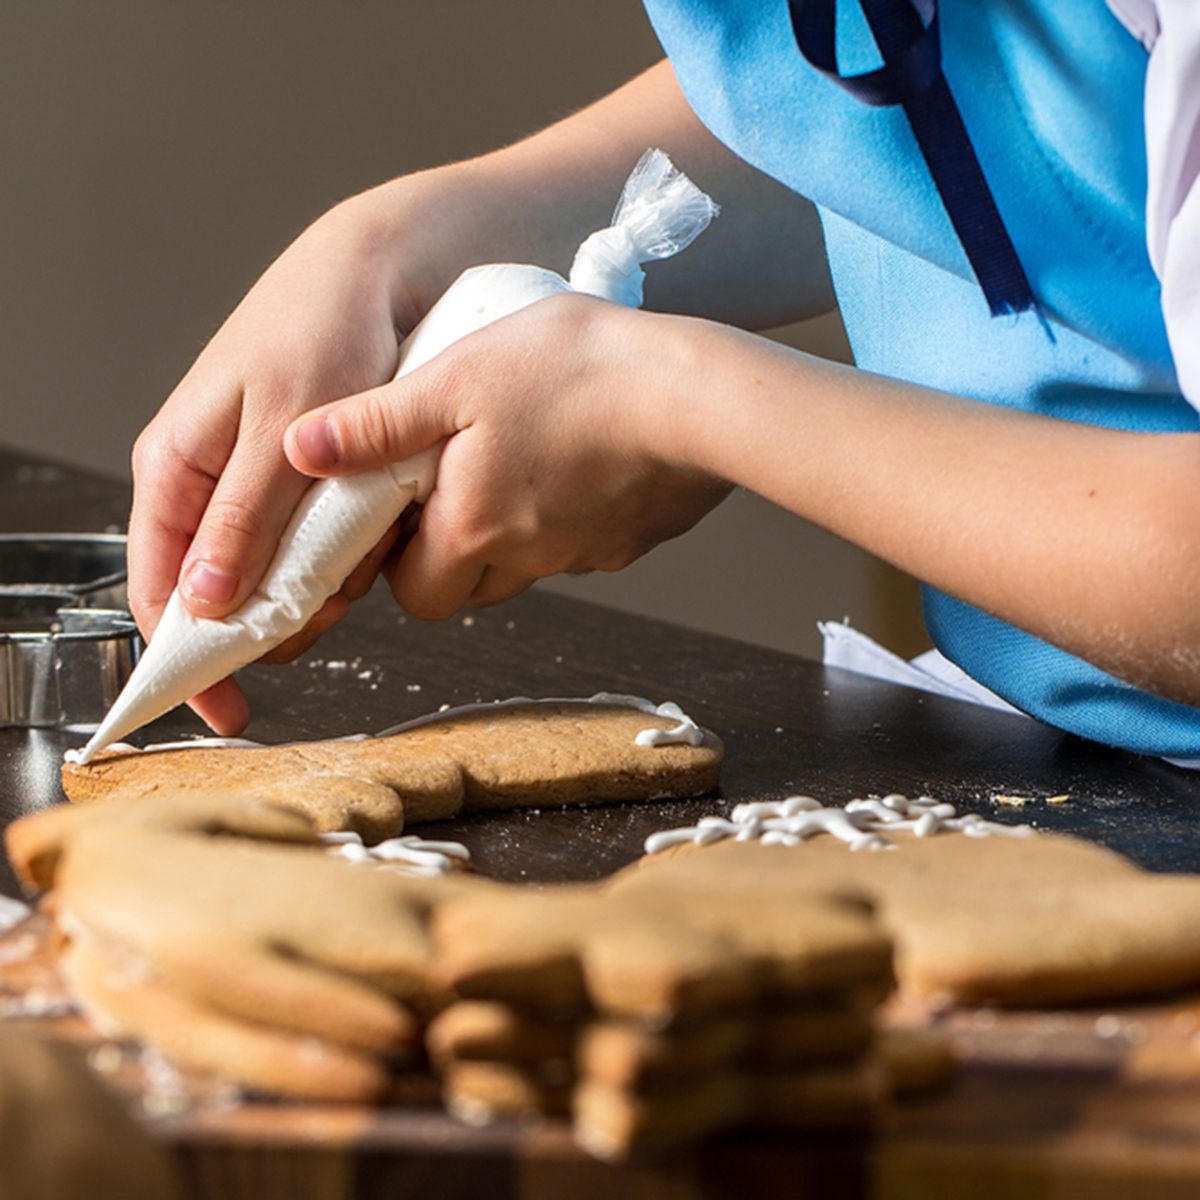 kids hand decorating cookies with sugar.